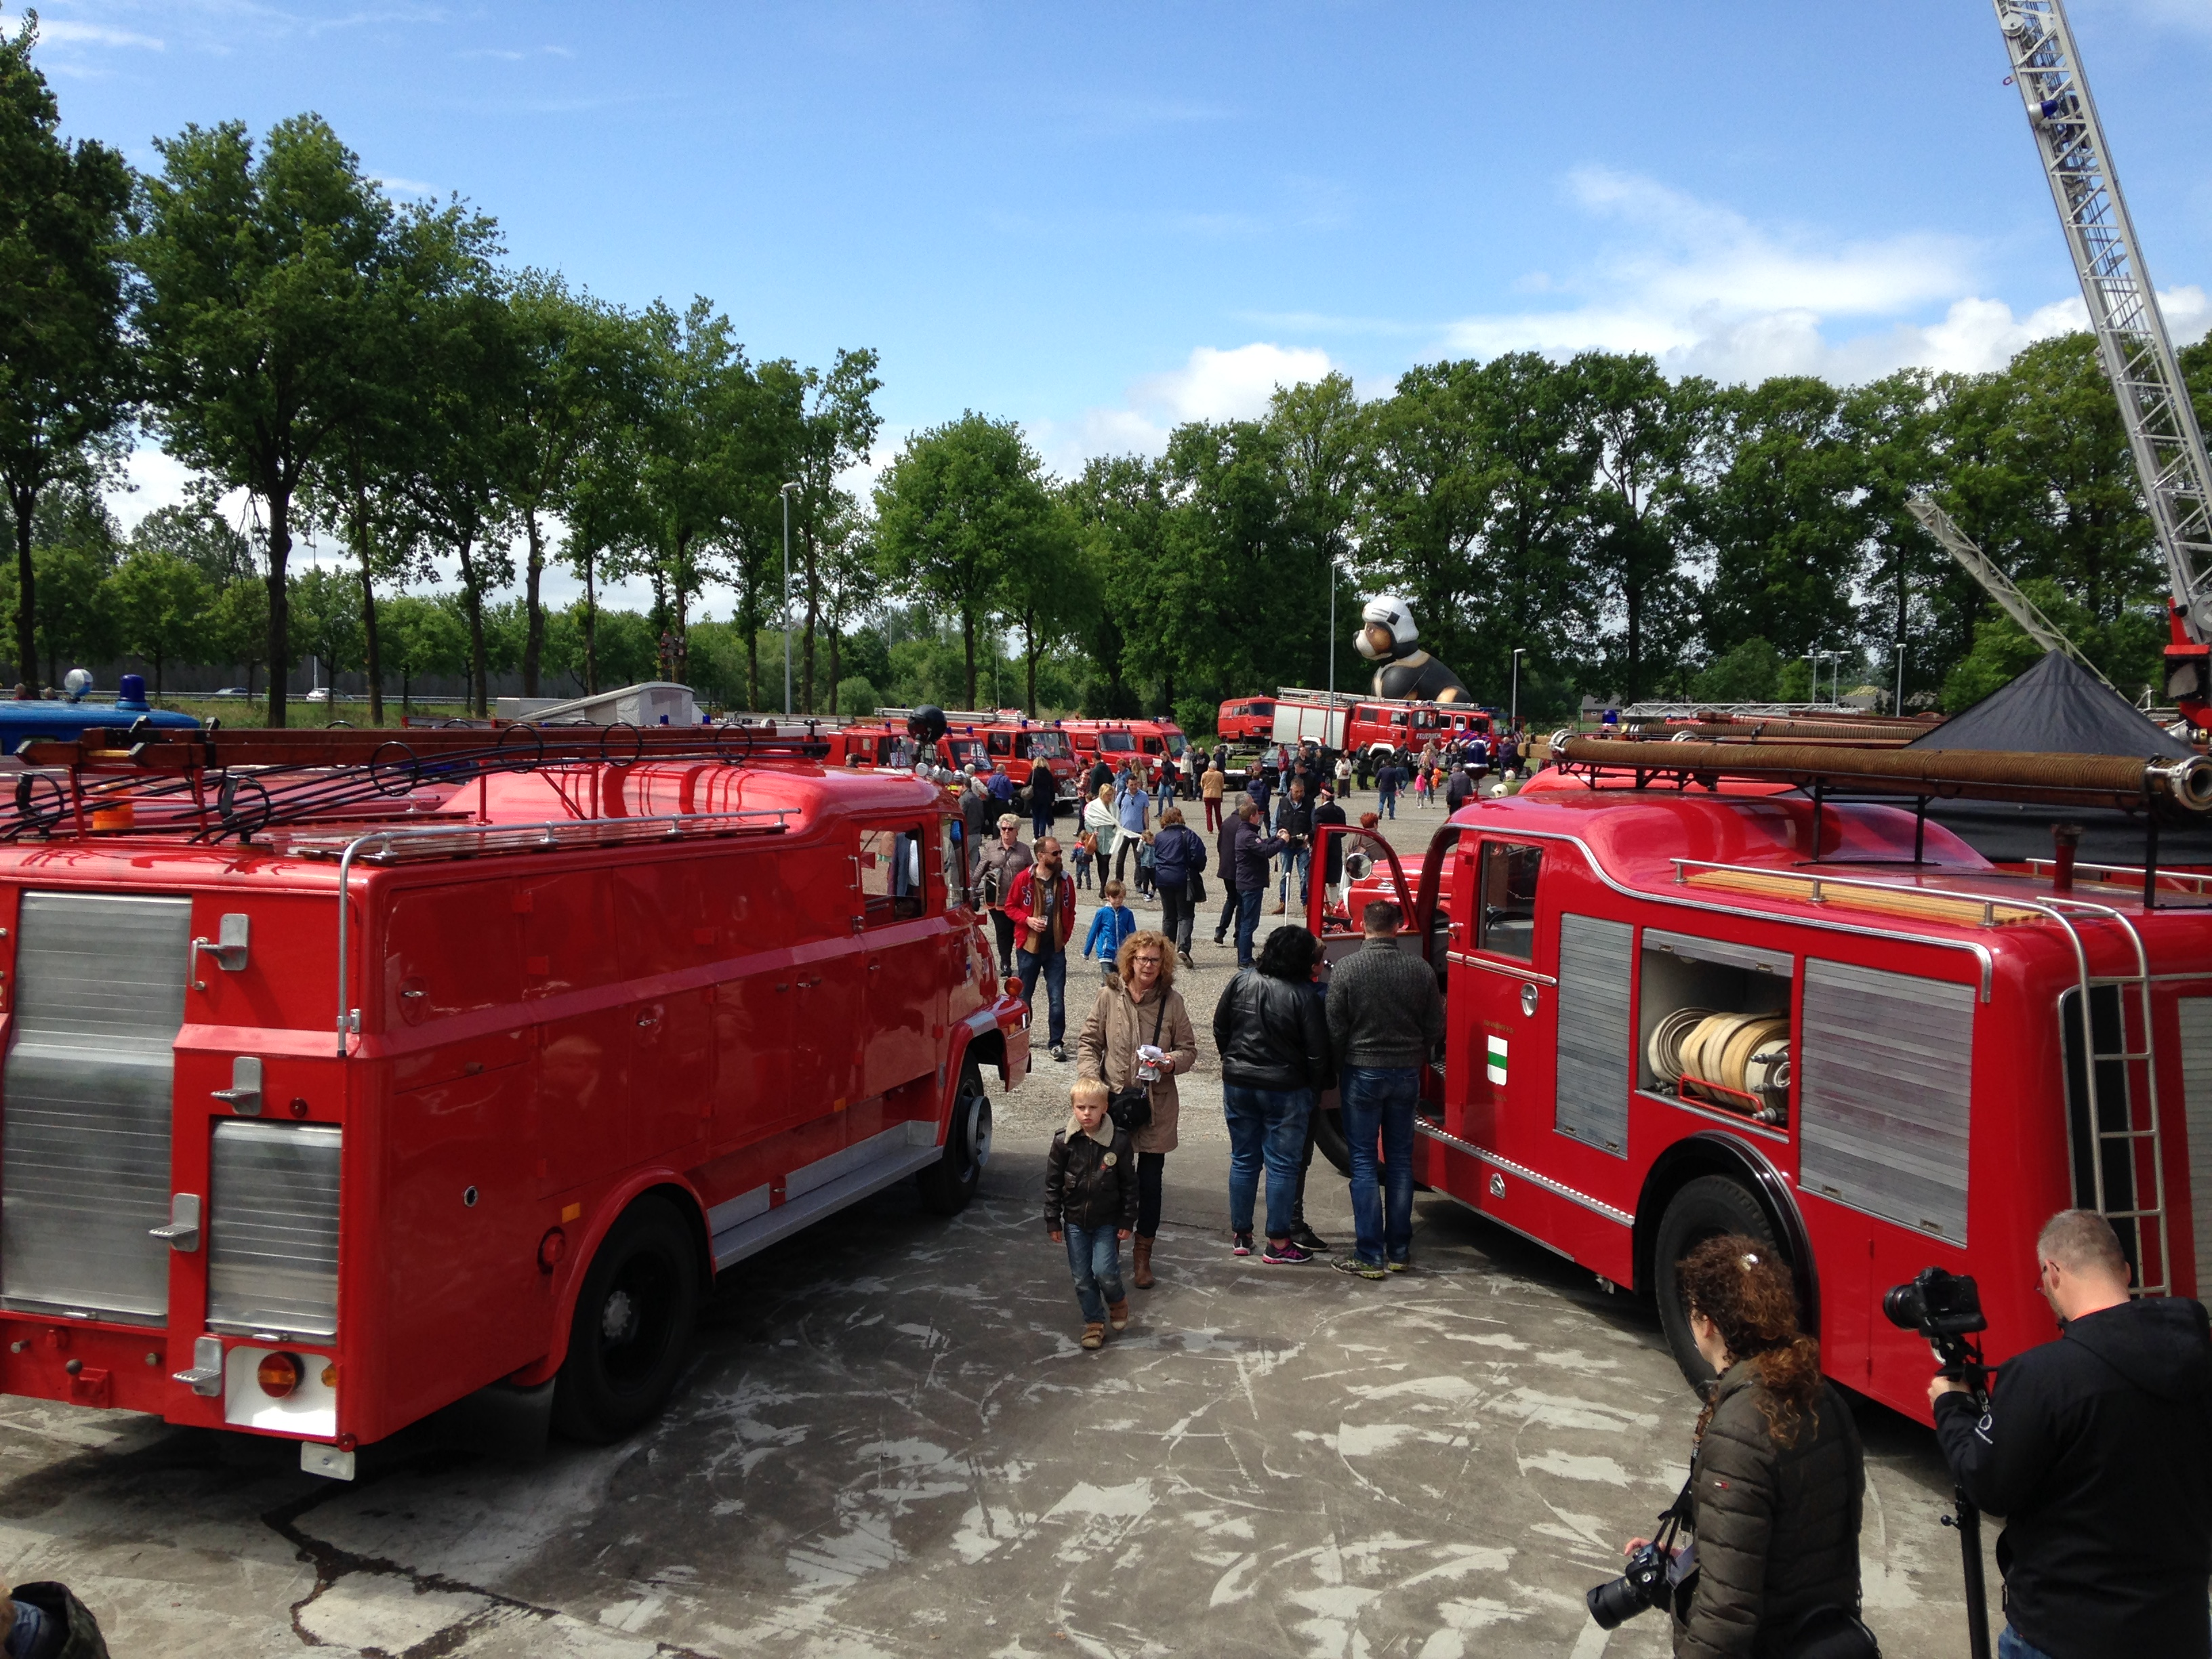 Red Classic Terrein